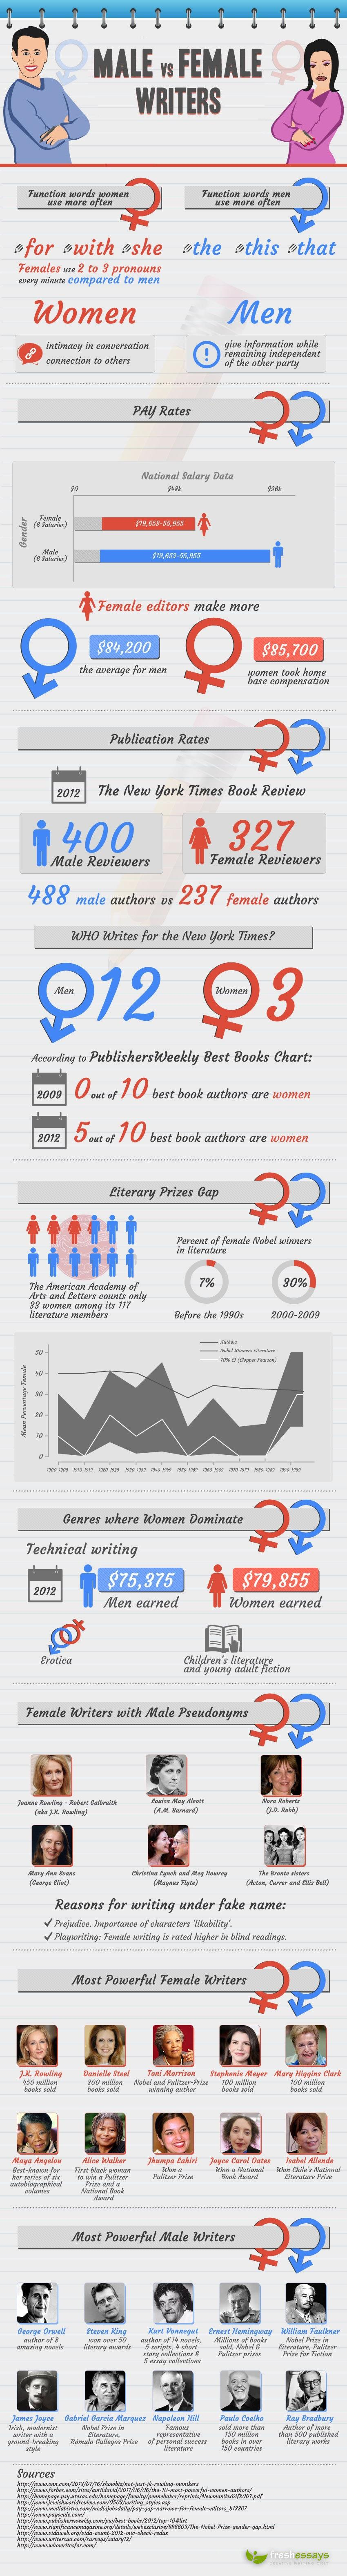 Comparing Male vs. Female Writers [INFOGRAPHIC]